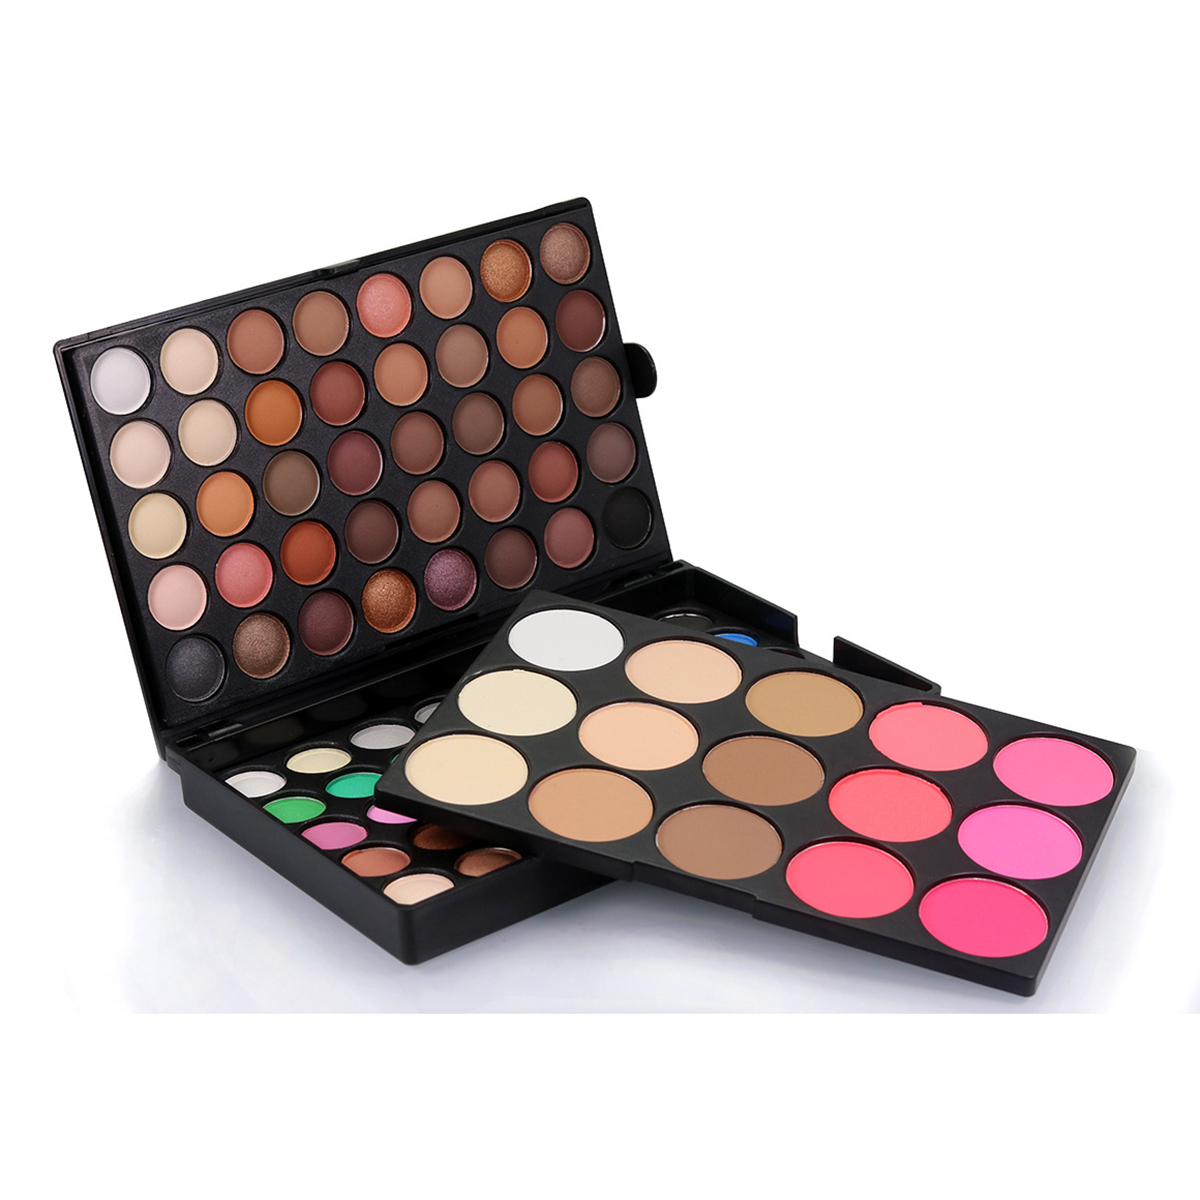 Eyeshadow Palette Silky Powder Professional Make Up Pallete Makeup Set 92 Colors Cosmetics Eye Shadow star wars taiko yaku stormtrooper 1 8 scale painted variant stormtrooper pvc action figure collectible model toy 17cm kt3256